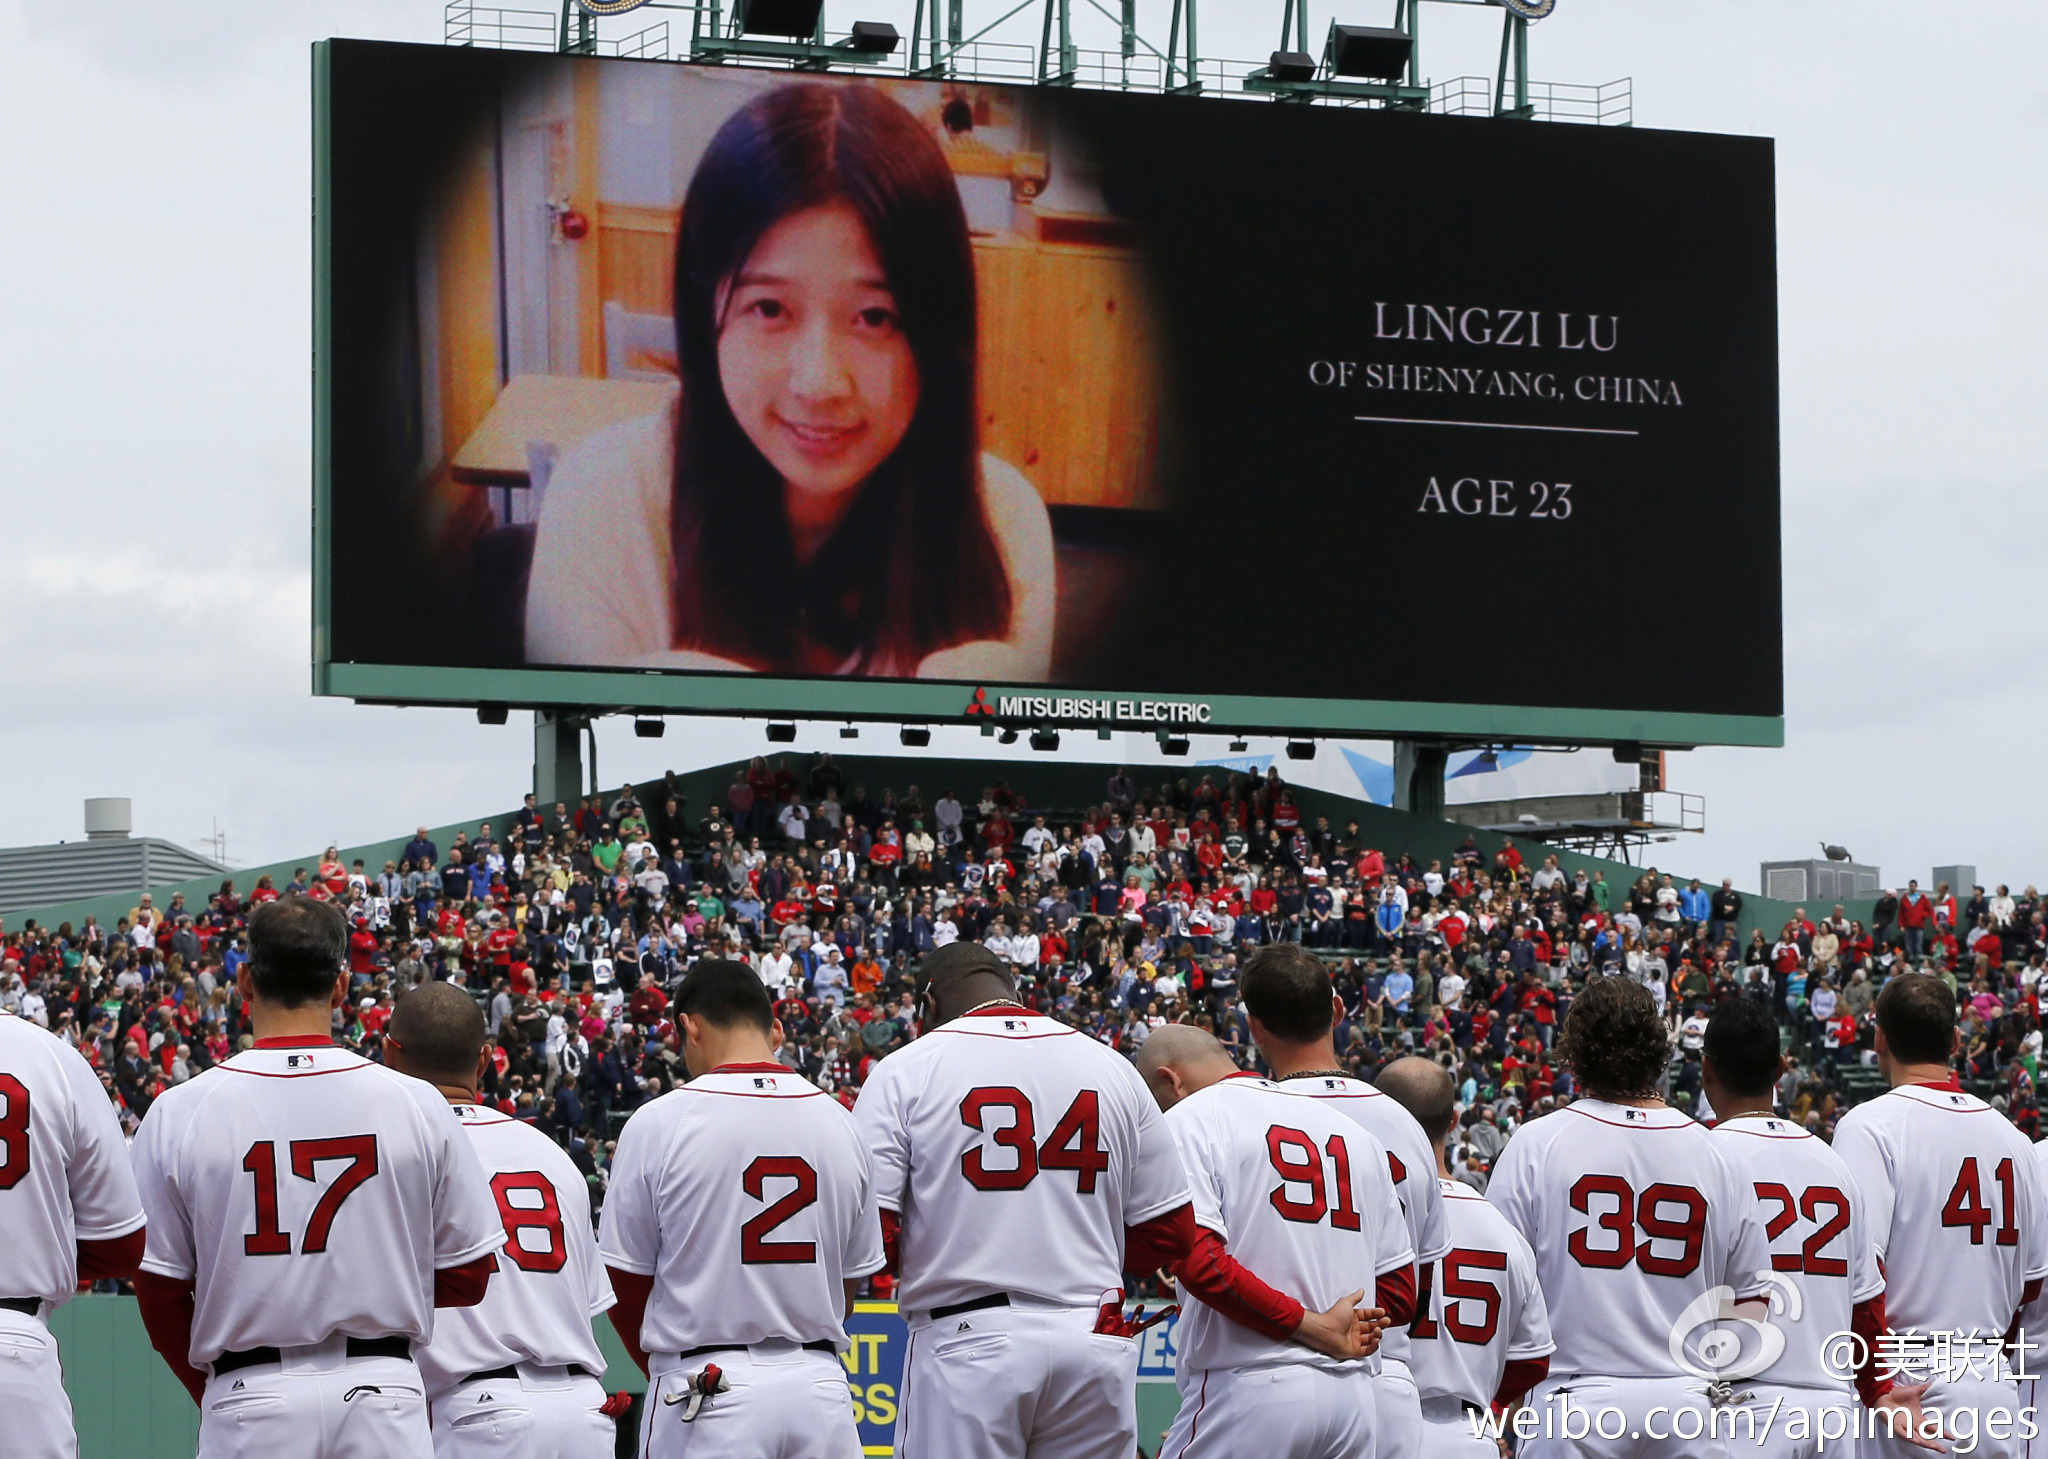 boston-red-sox-baseball-game-lu-lingzi-overseas-chinese-student-victim-of-boston-marathon-bombings-remembered-ap-photo.jpg